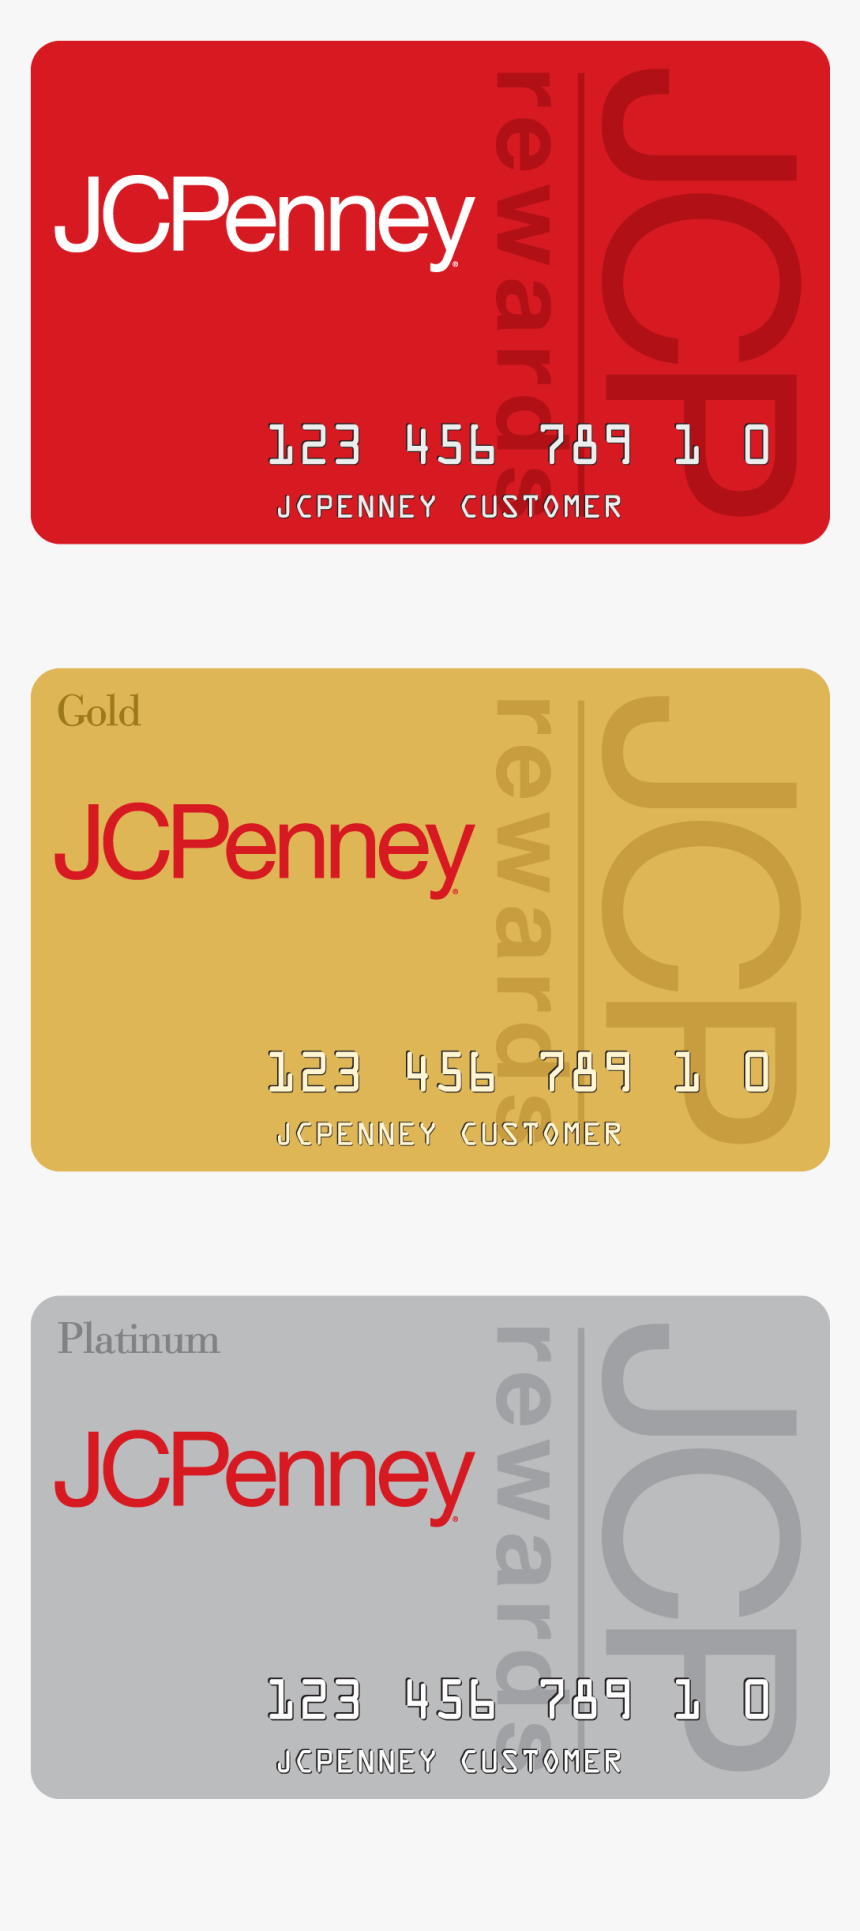 about jcpenney credit card